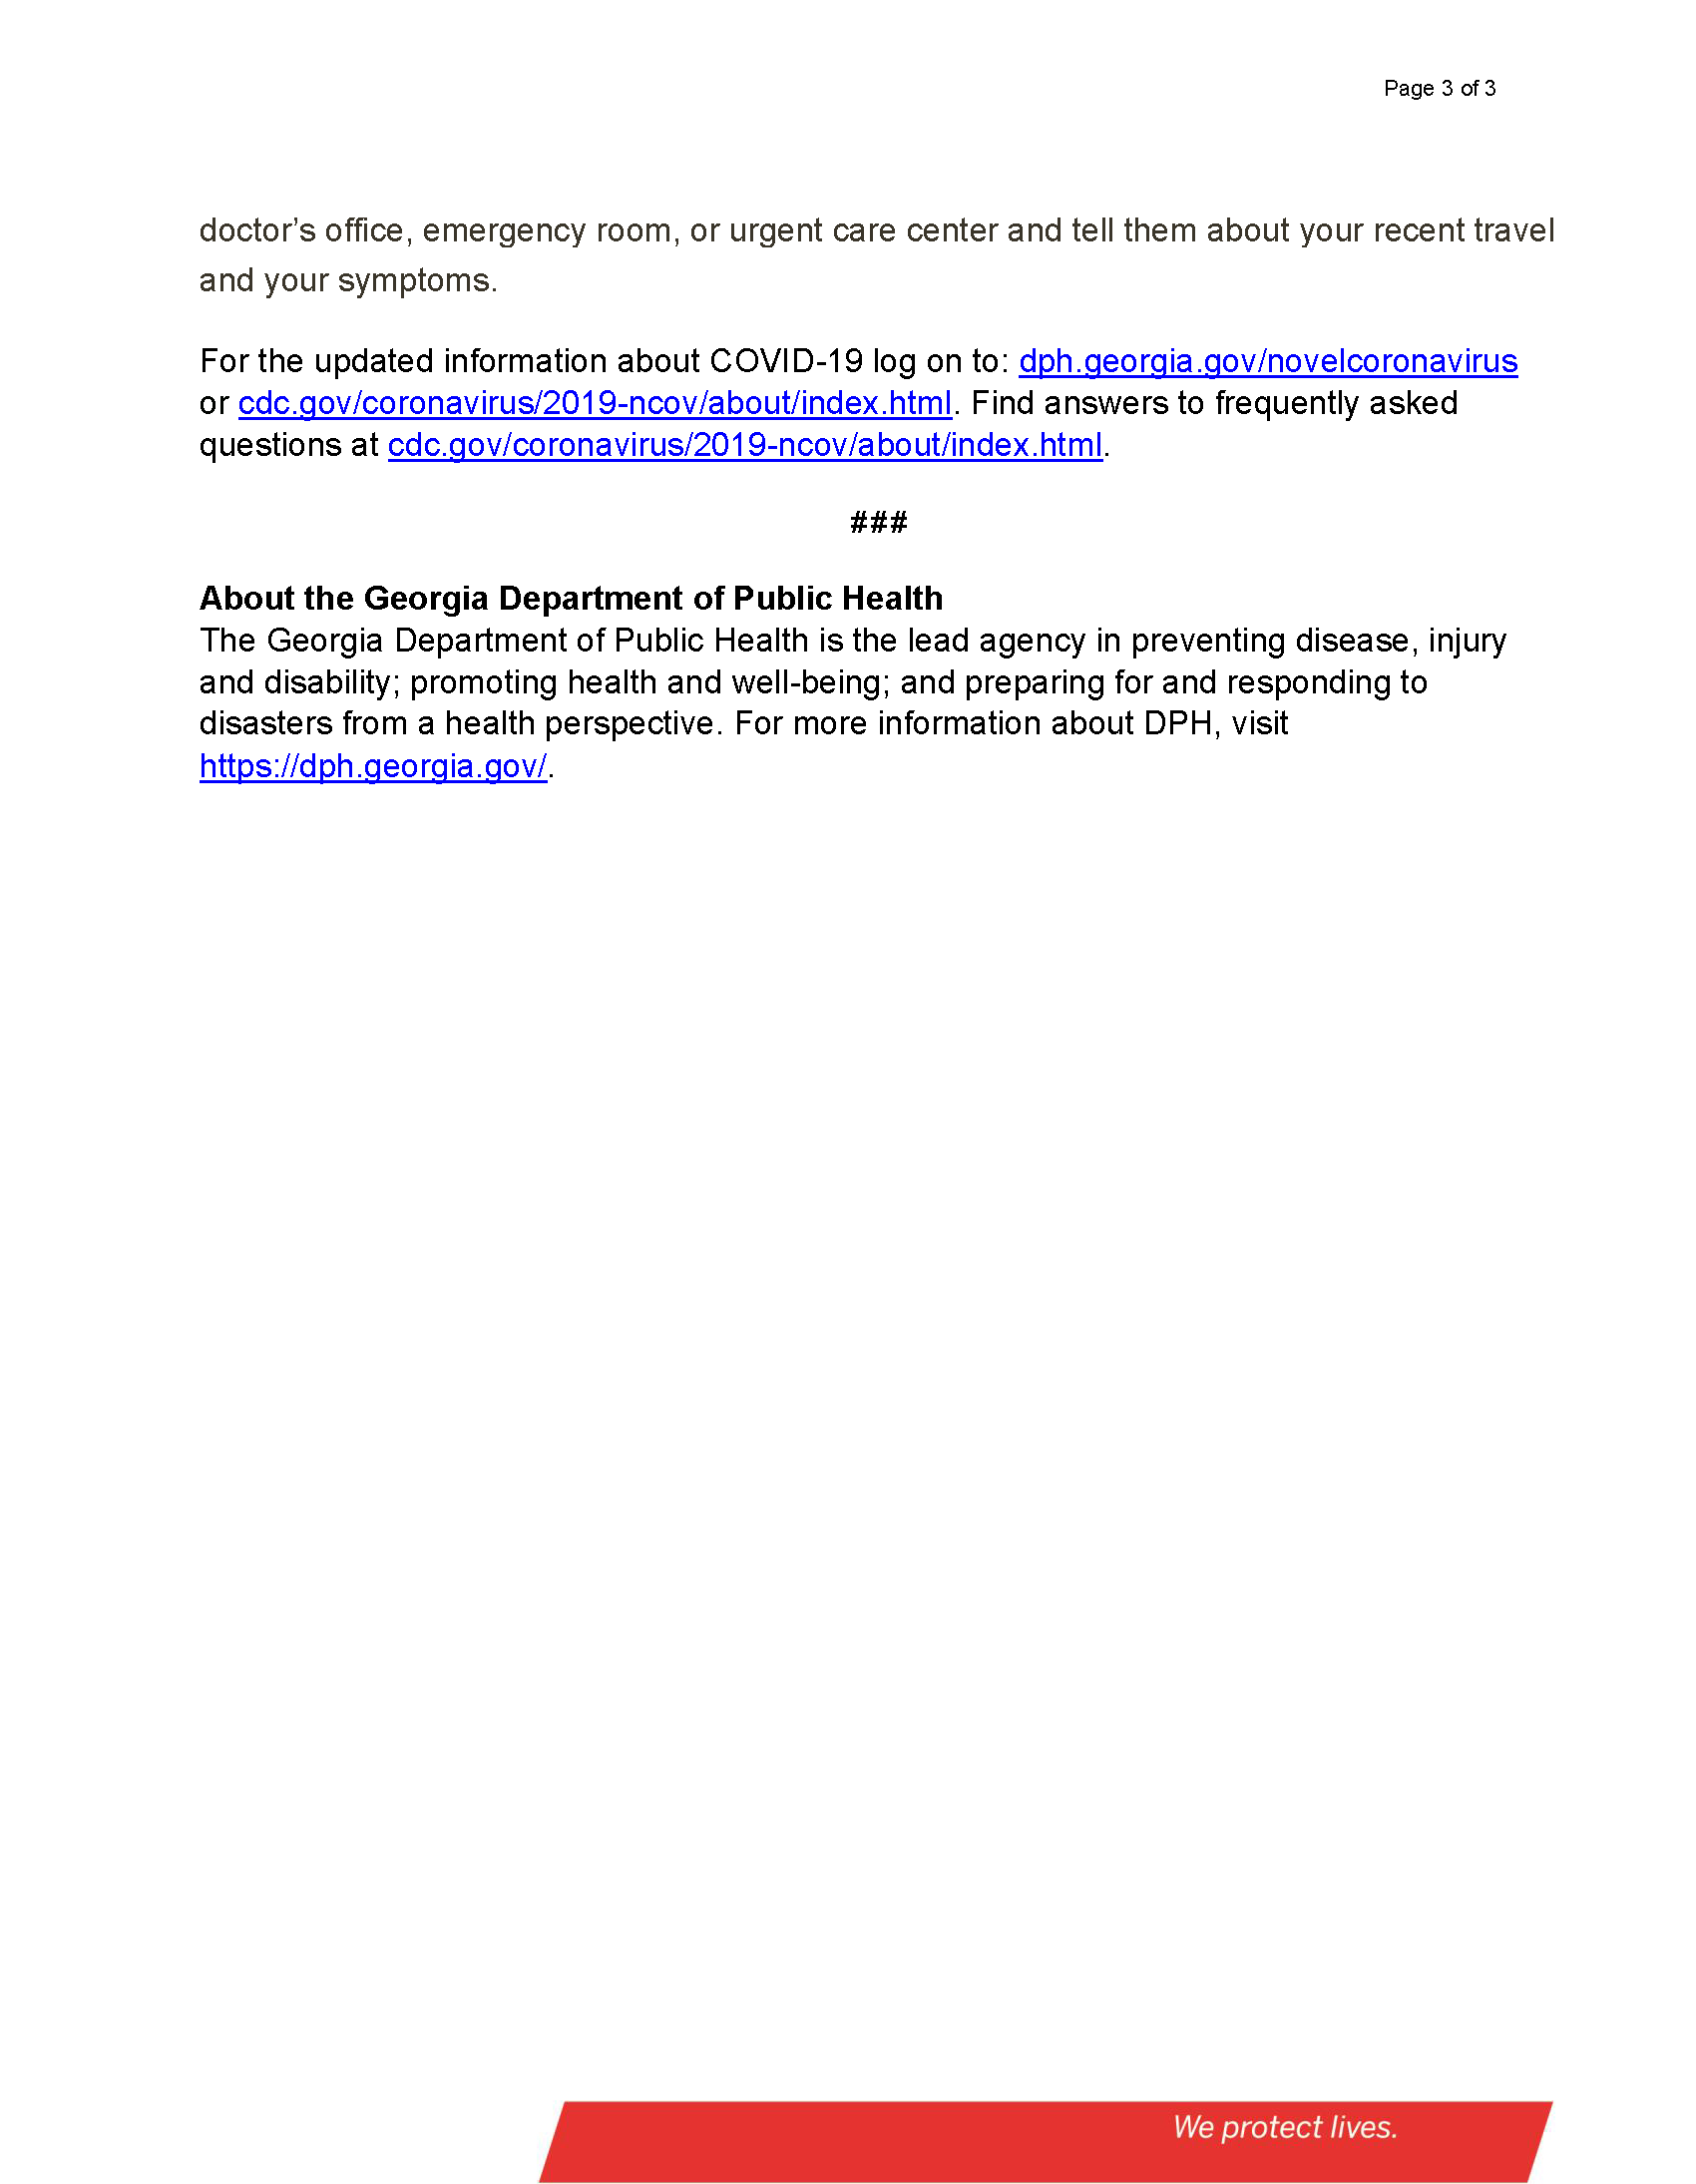 DPH NEWS RELEASE - COVID-19 CONFIRMED IN GA 3-2-20_Page_3